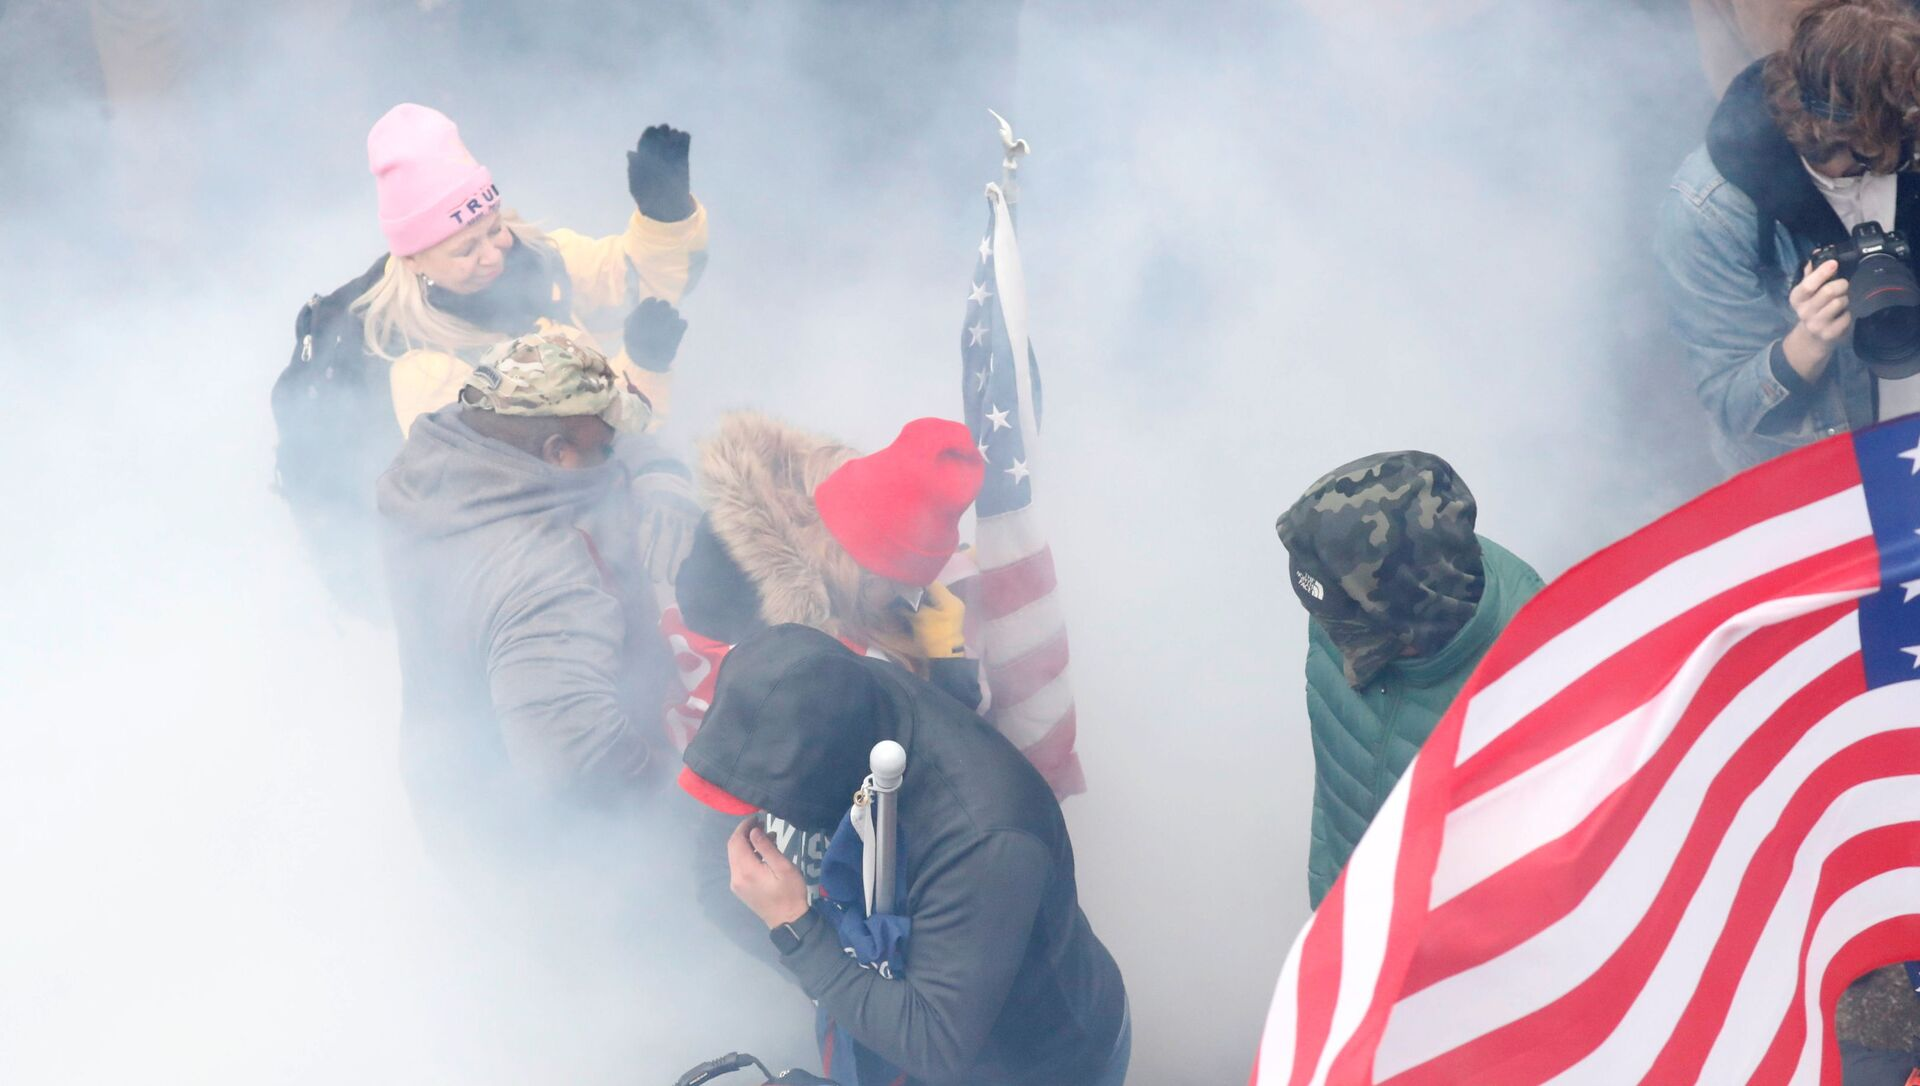 Pro-Trump protesters react amidst a cloud of tear gas during clashes with Capitol police at a rally to contest the certification of the 2020 US presidential election results by the US Congress, at the US Capitol Building in Washington, US, January 6, 2021. REUTERS/Shannon Stapleton - Sputnik International, 1920, 26.02.2021